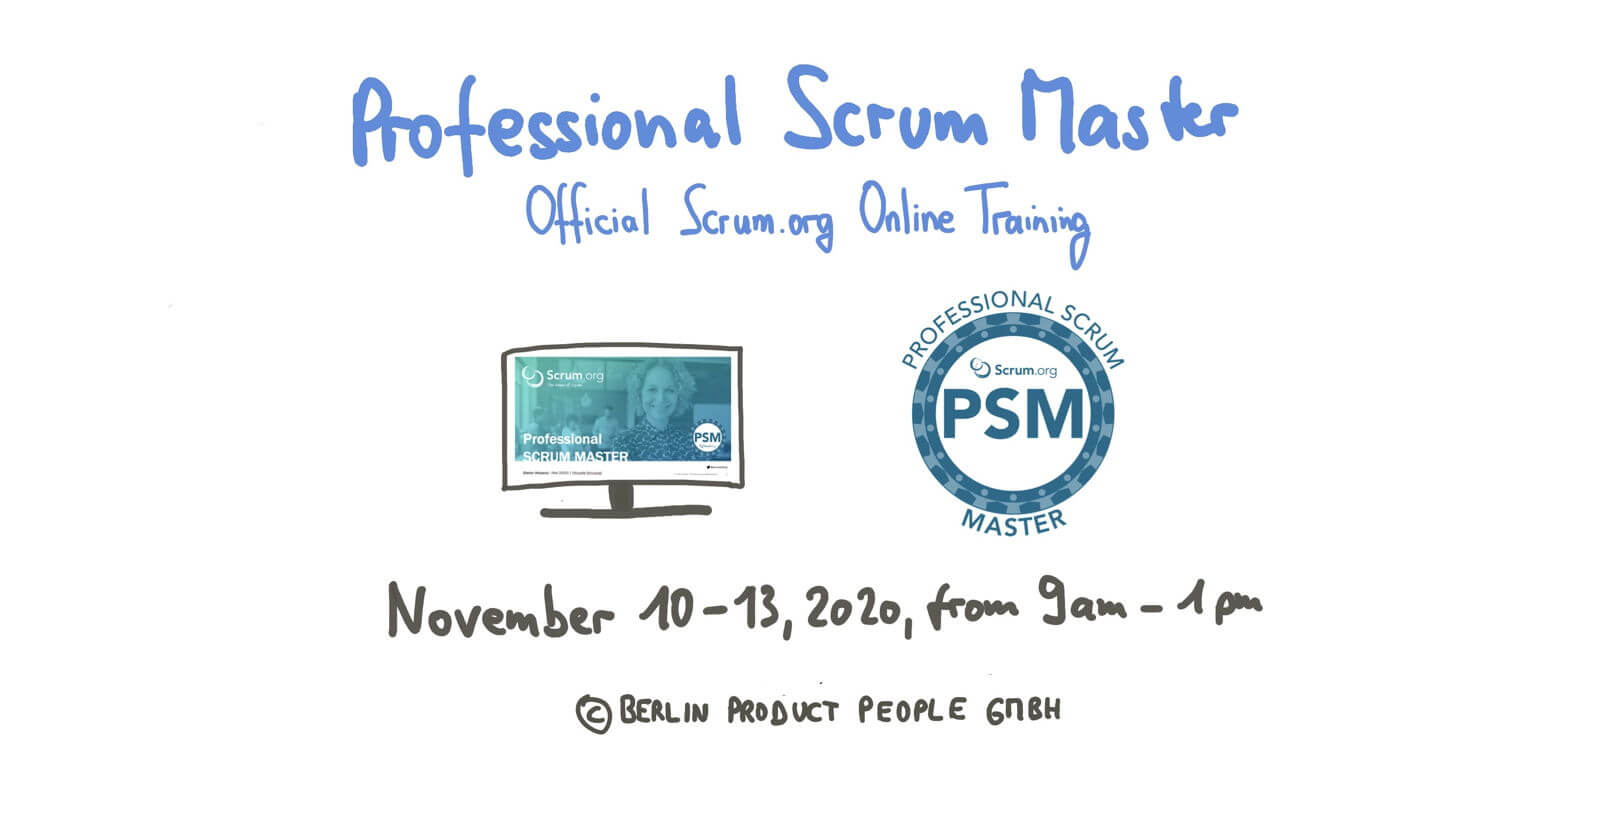 🖥 Professional Scrum Master Online Training: November 10-13, 2020 — Berlin Product People GmbH